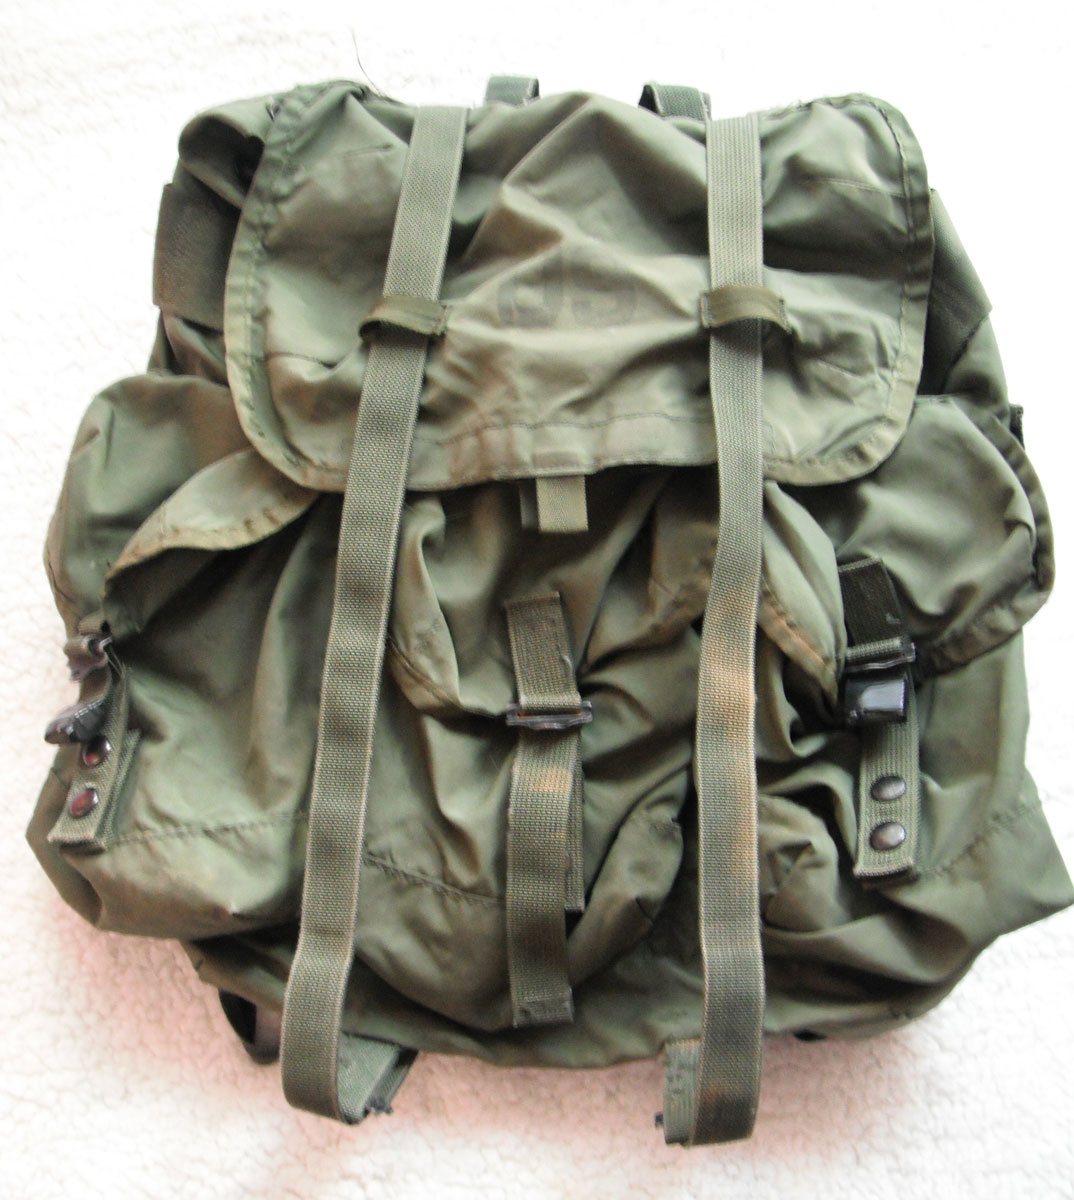 12 Reasons Why You Should Get a Military Backpack – Gracie's Good Life